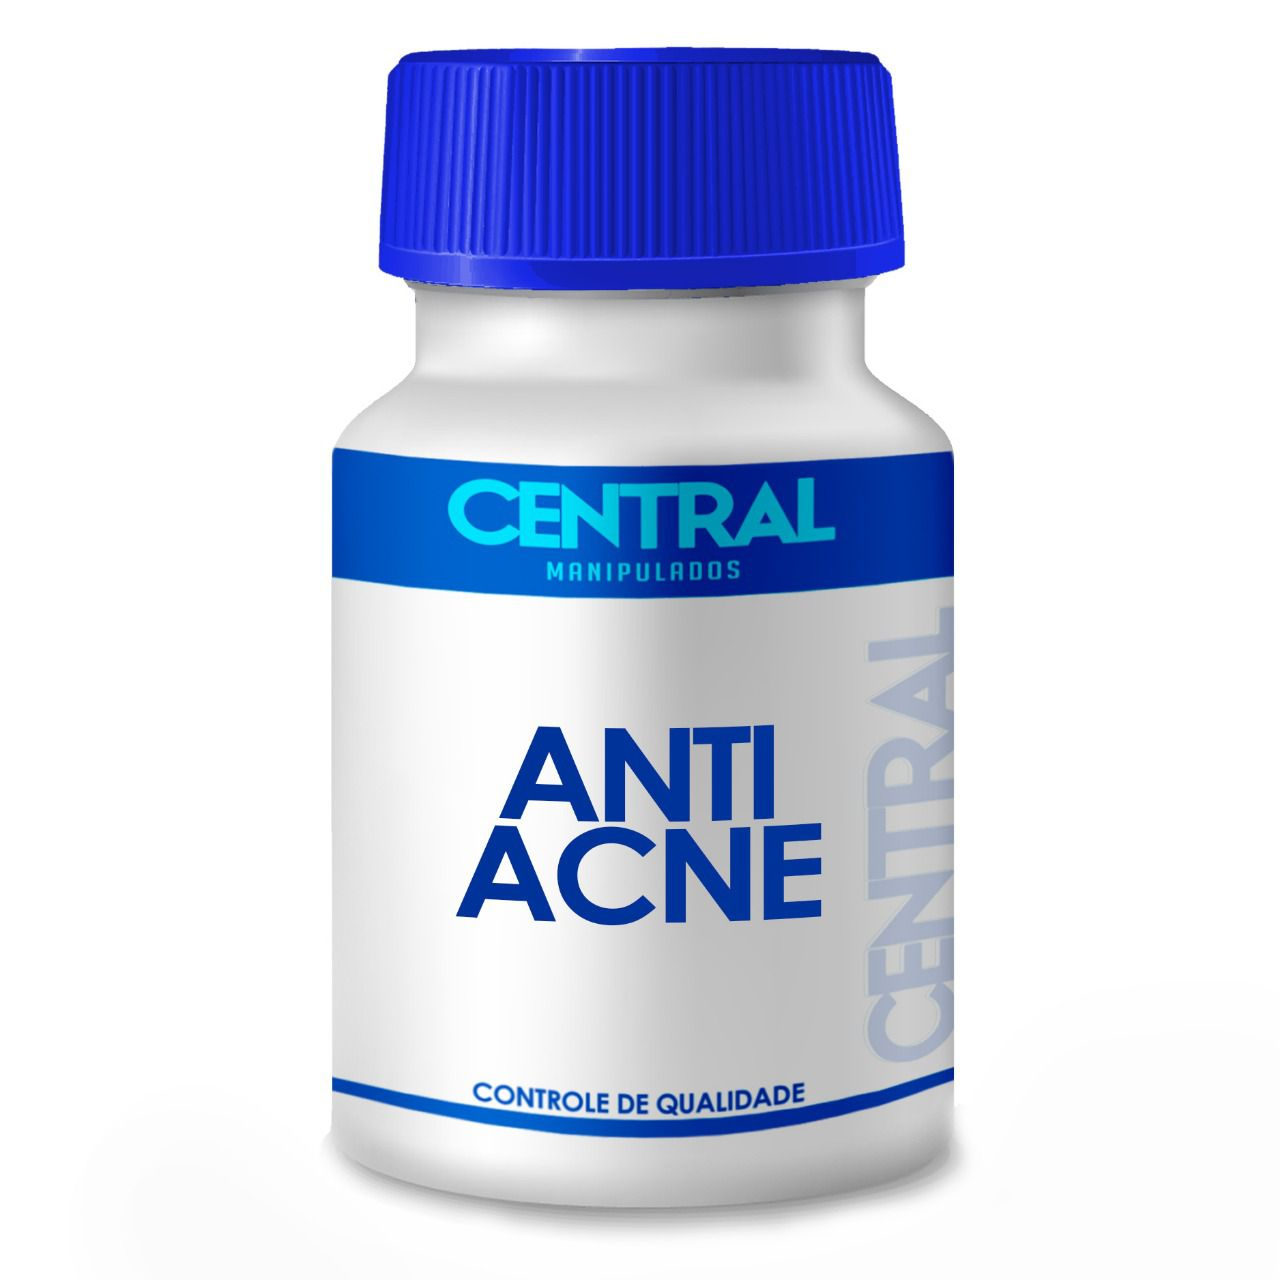 Anti Acne Central Manipulados R$40